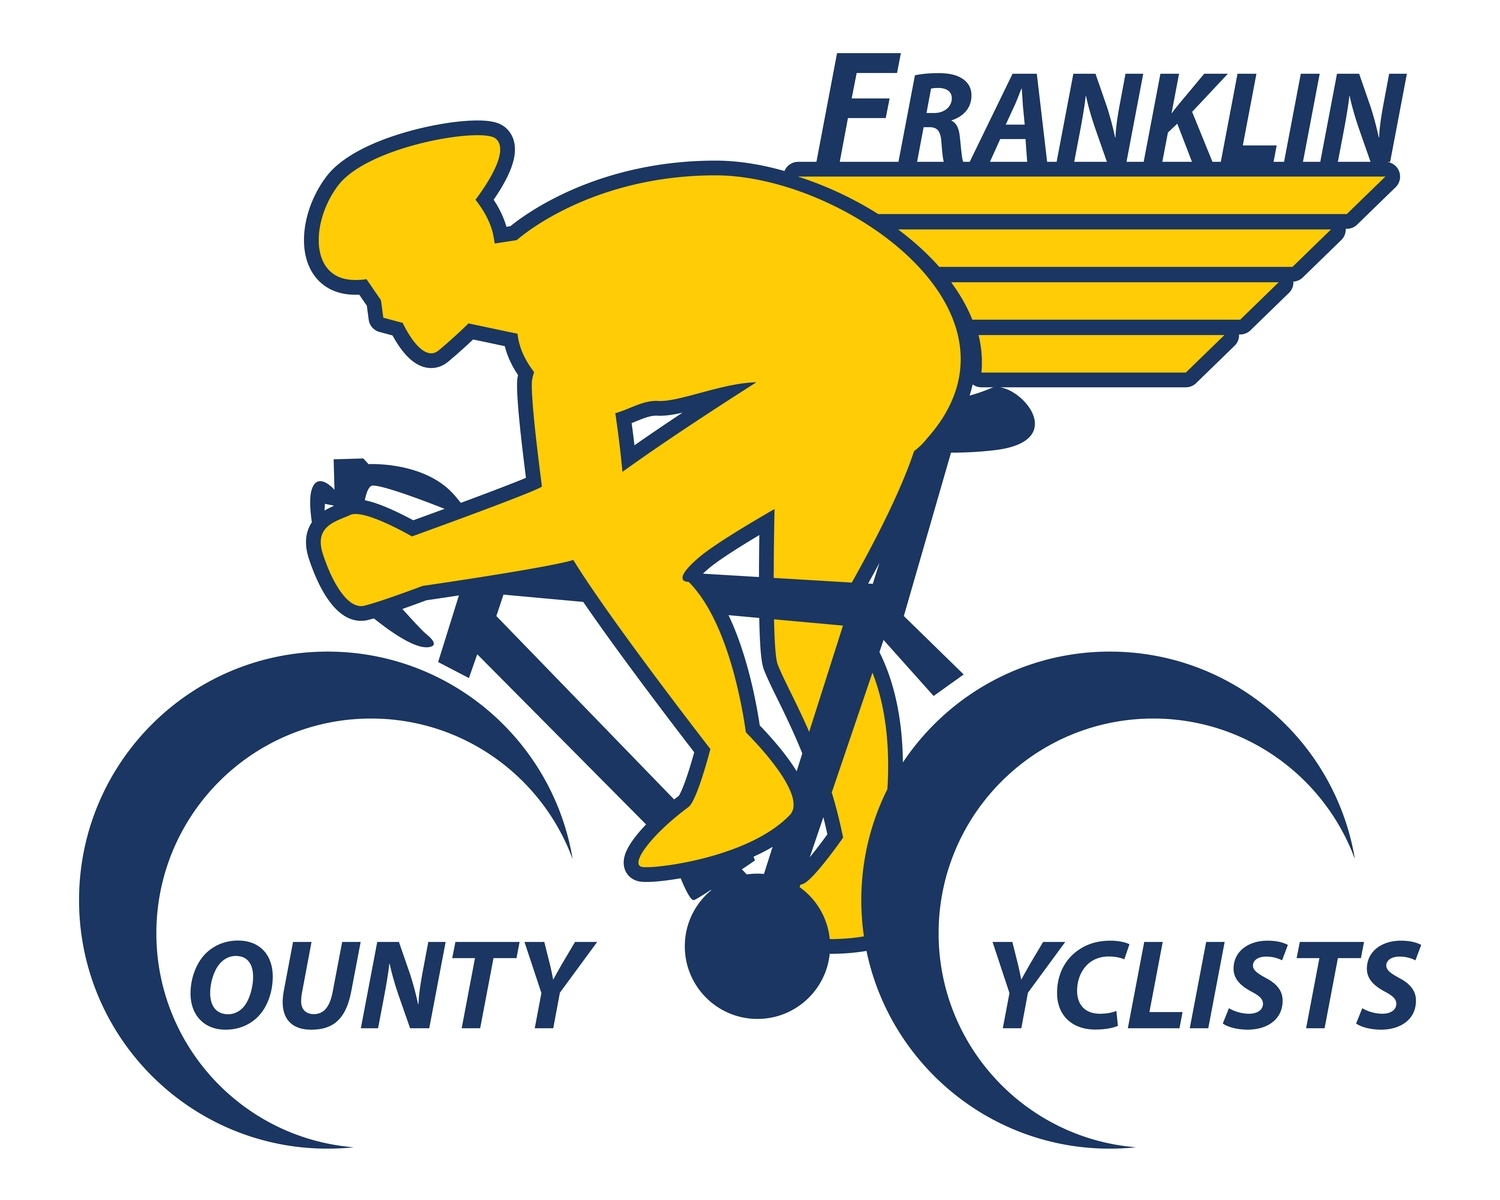 Franklin County Cyclists